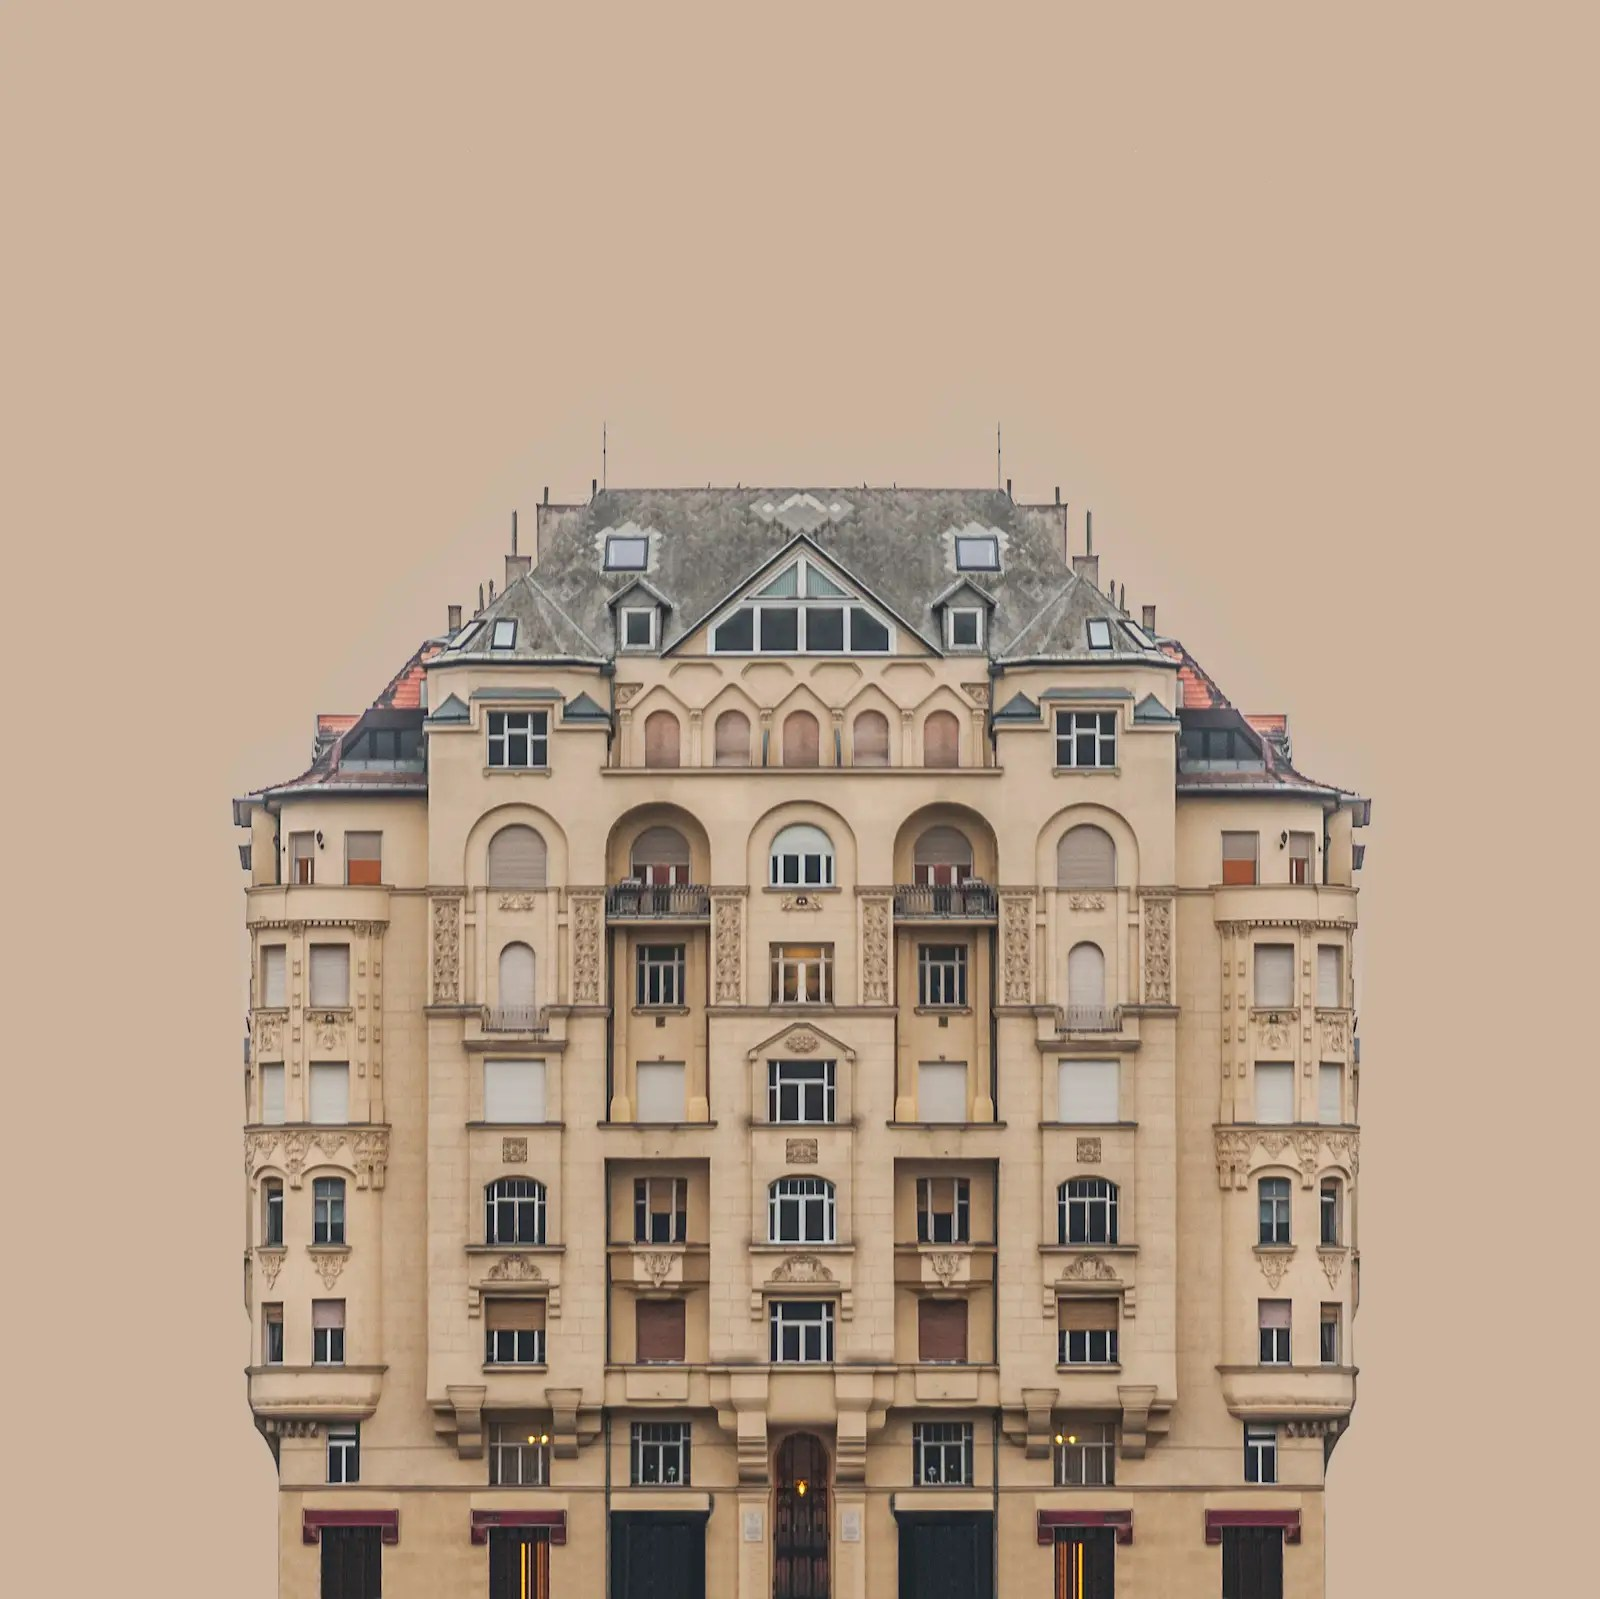 'Urban Symmetry' — Zsolt Hlinka (Hungary), Professional, Architecture